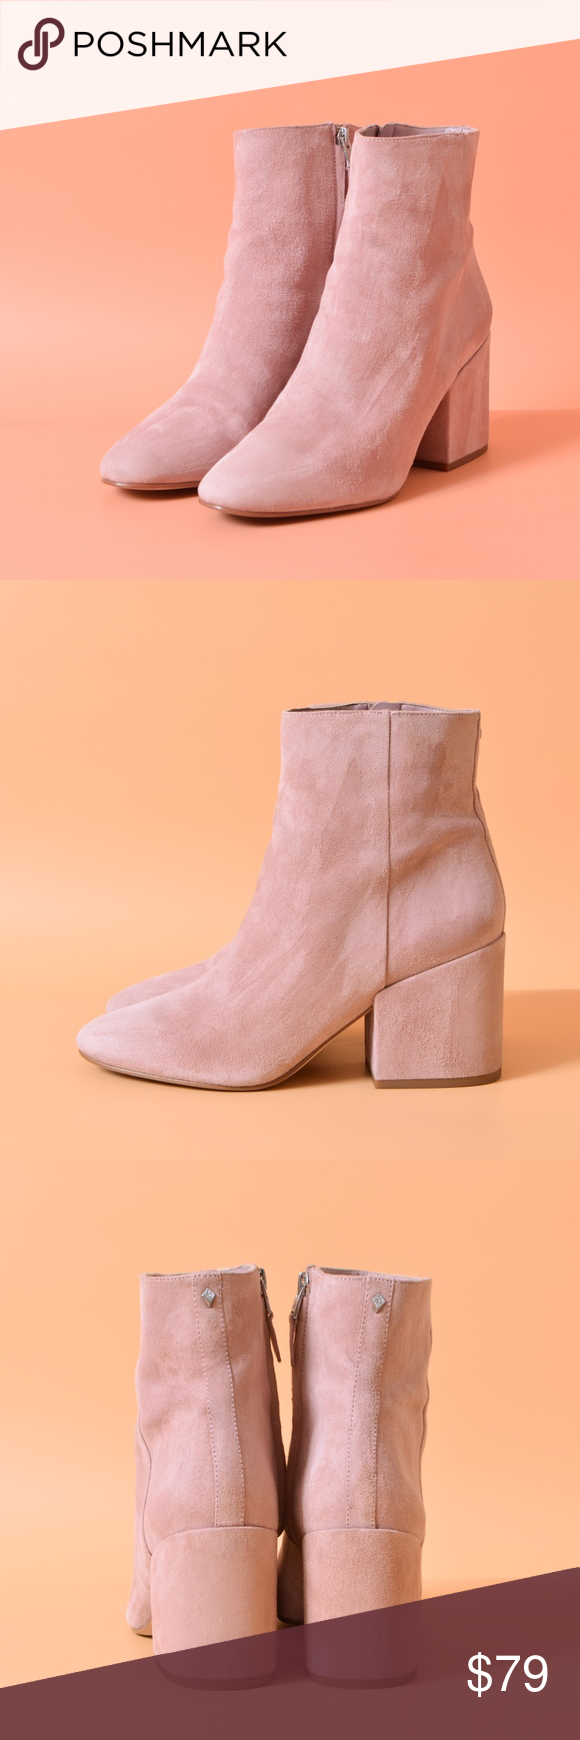 b93028b17b8a Sam Edelman Pink Suede Leather Taye Mauve Booties Pre owned great  condition. Maybe worn once